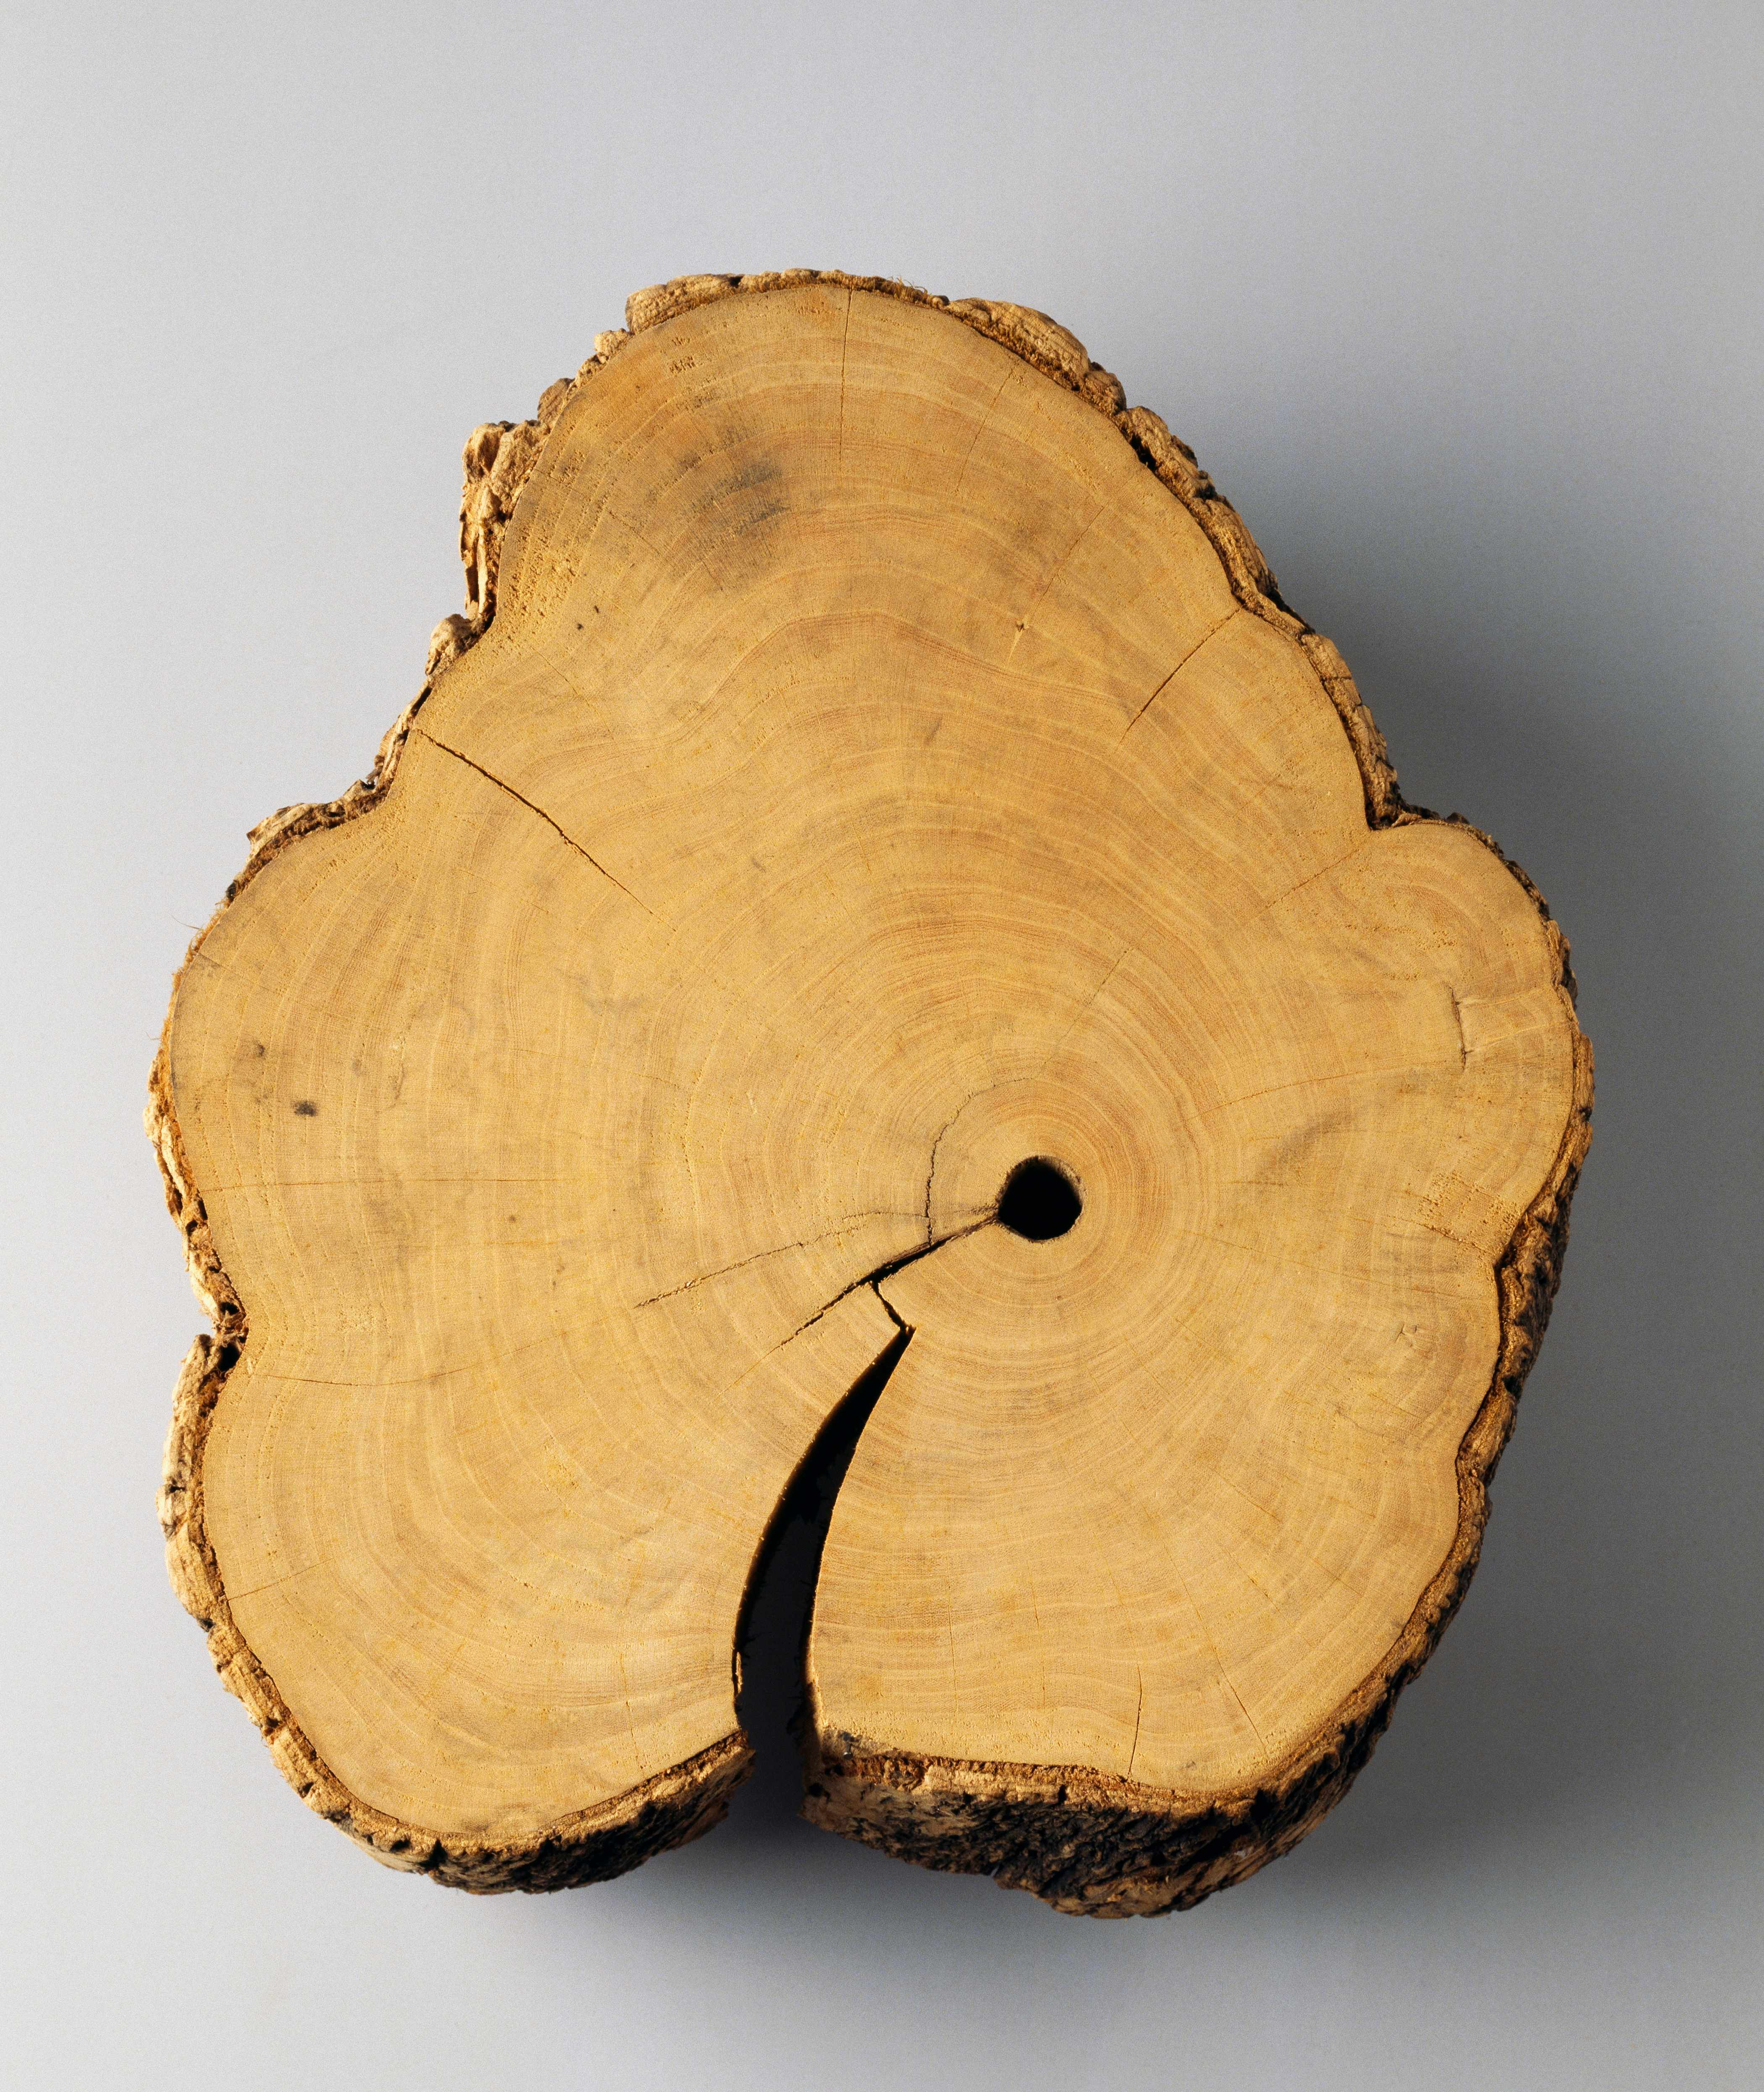 With careful counting, it's possible to judge how old a tree was when it was felled. © DEA/G. Cigolini/Getty